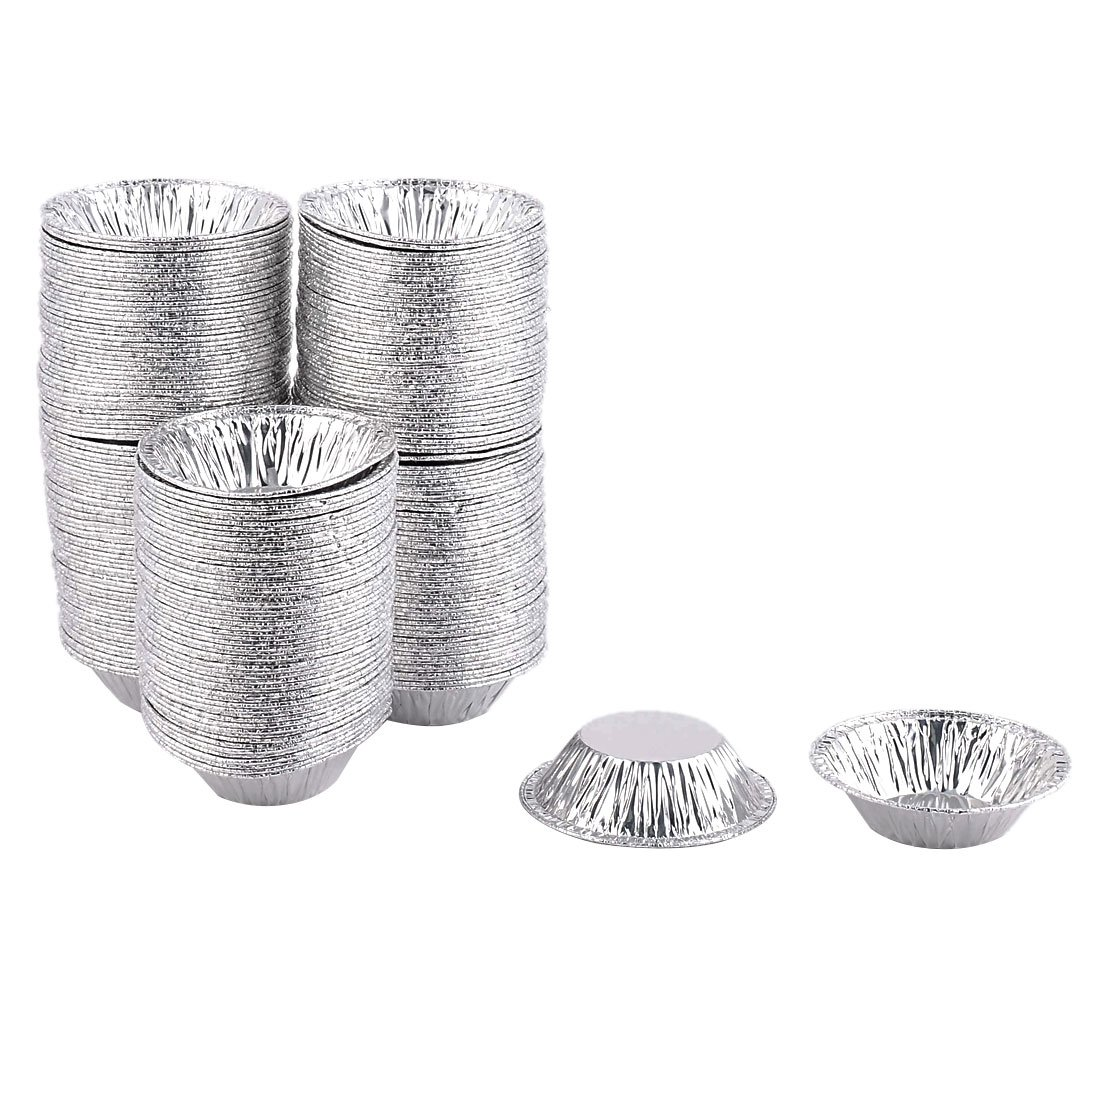 uxcell Aluminium Foil Home Baking Disposable Cake Egg Tart Chocolate Mold 250pcs Silver Tone